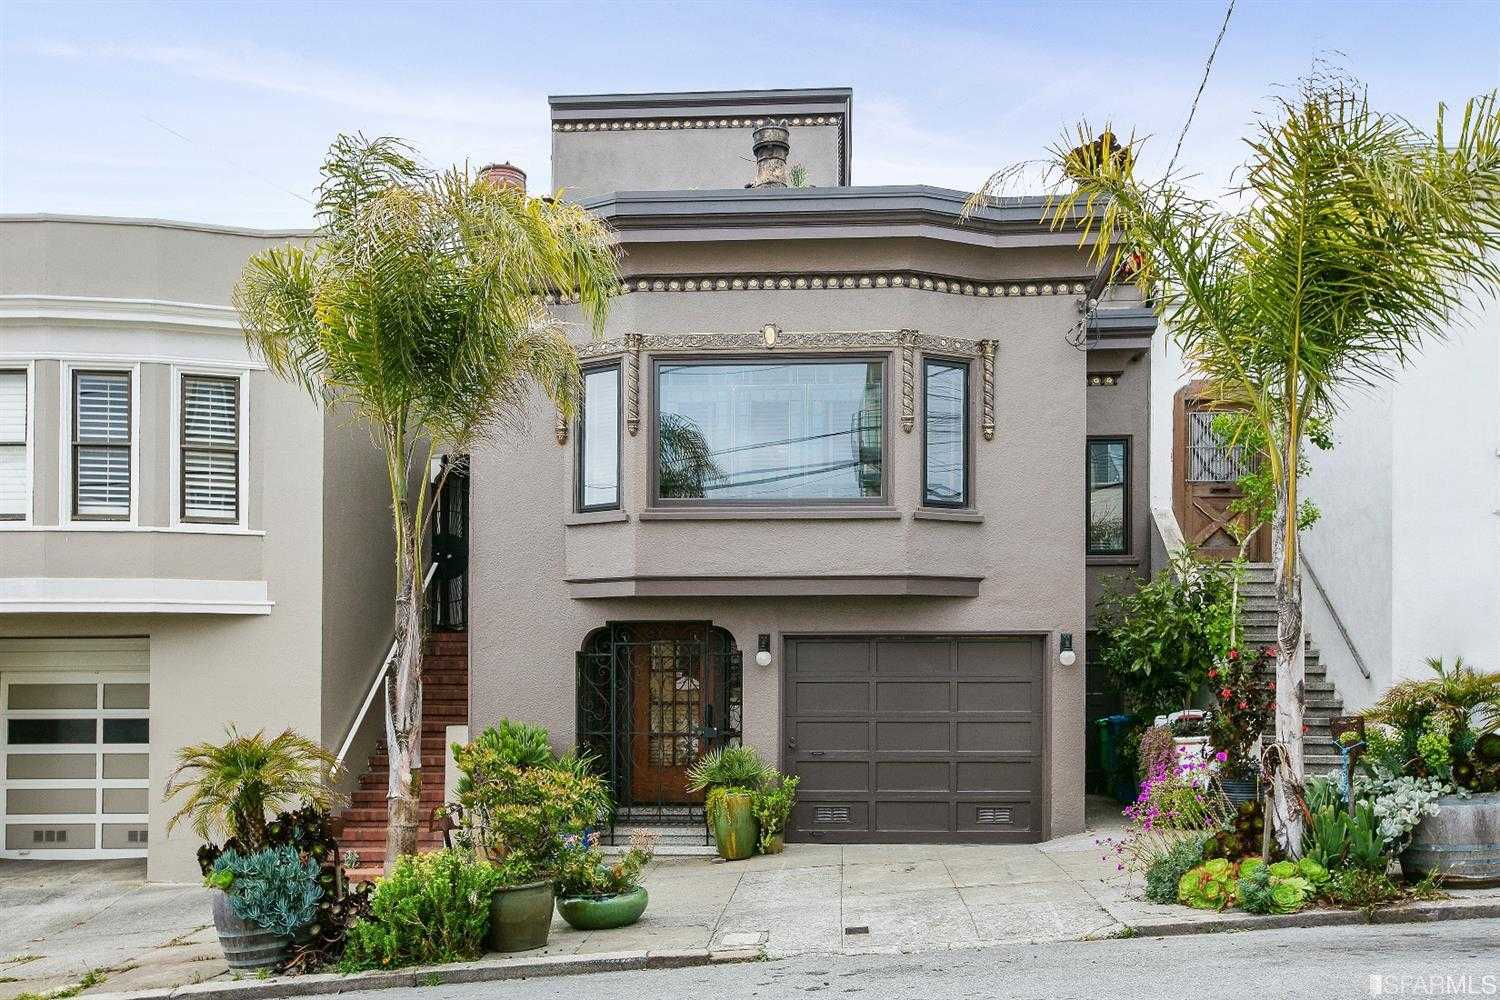 715 29th Ave San Francisco, CA 94121